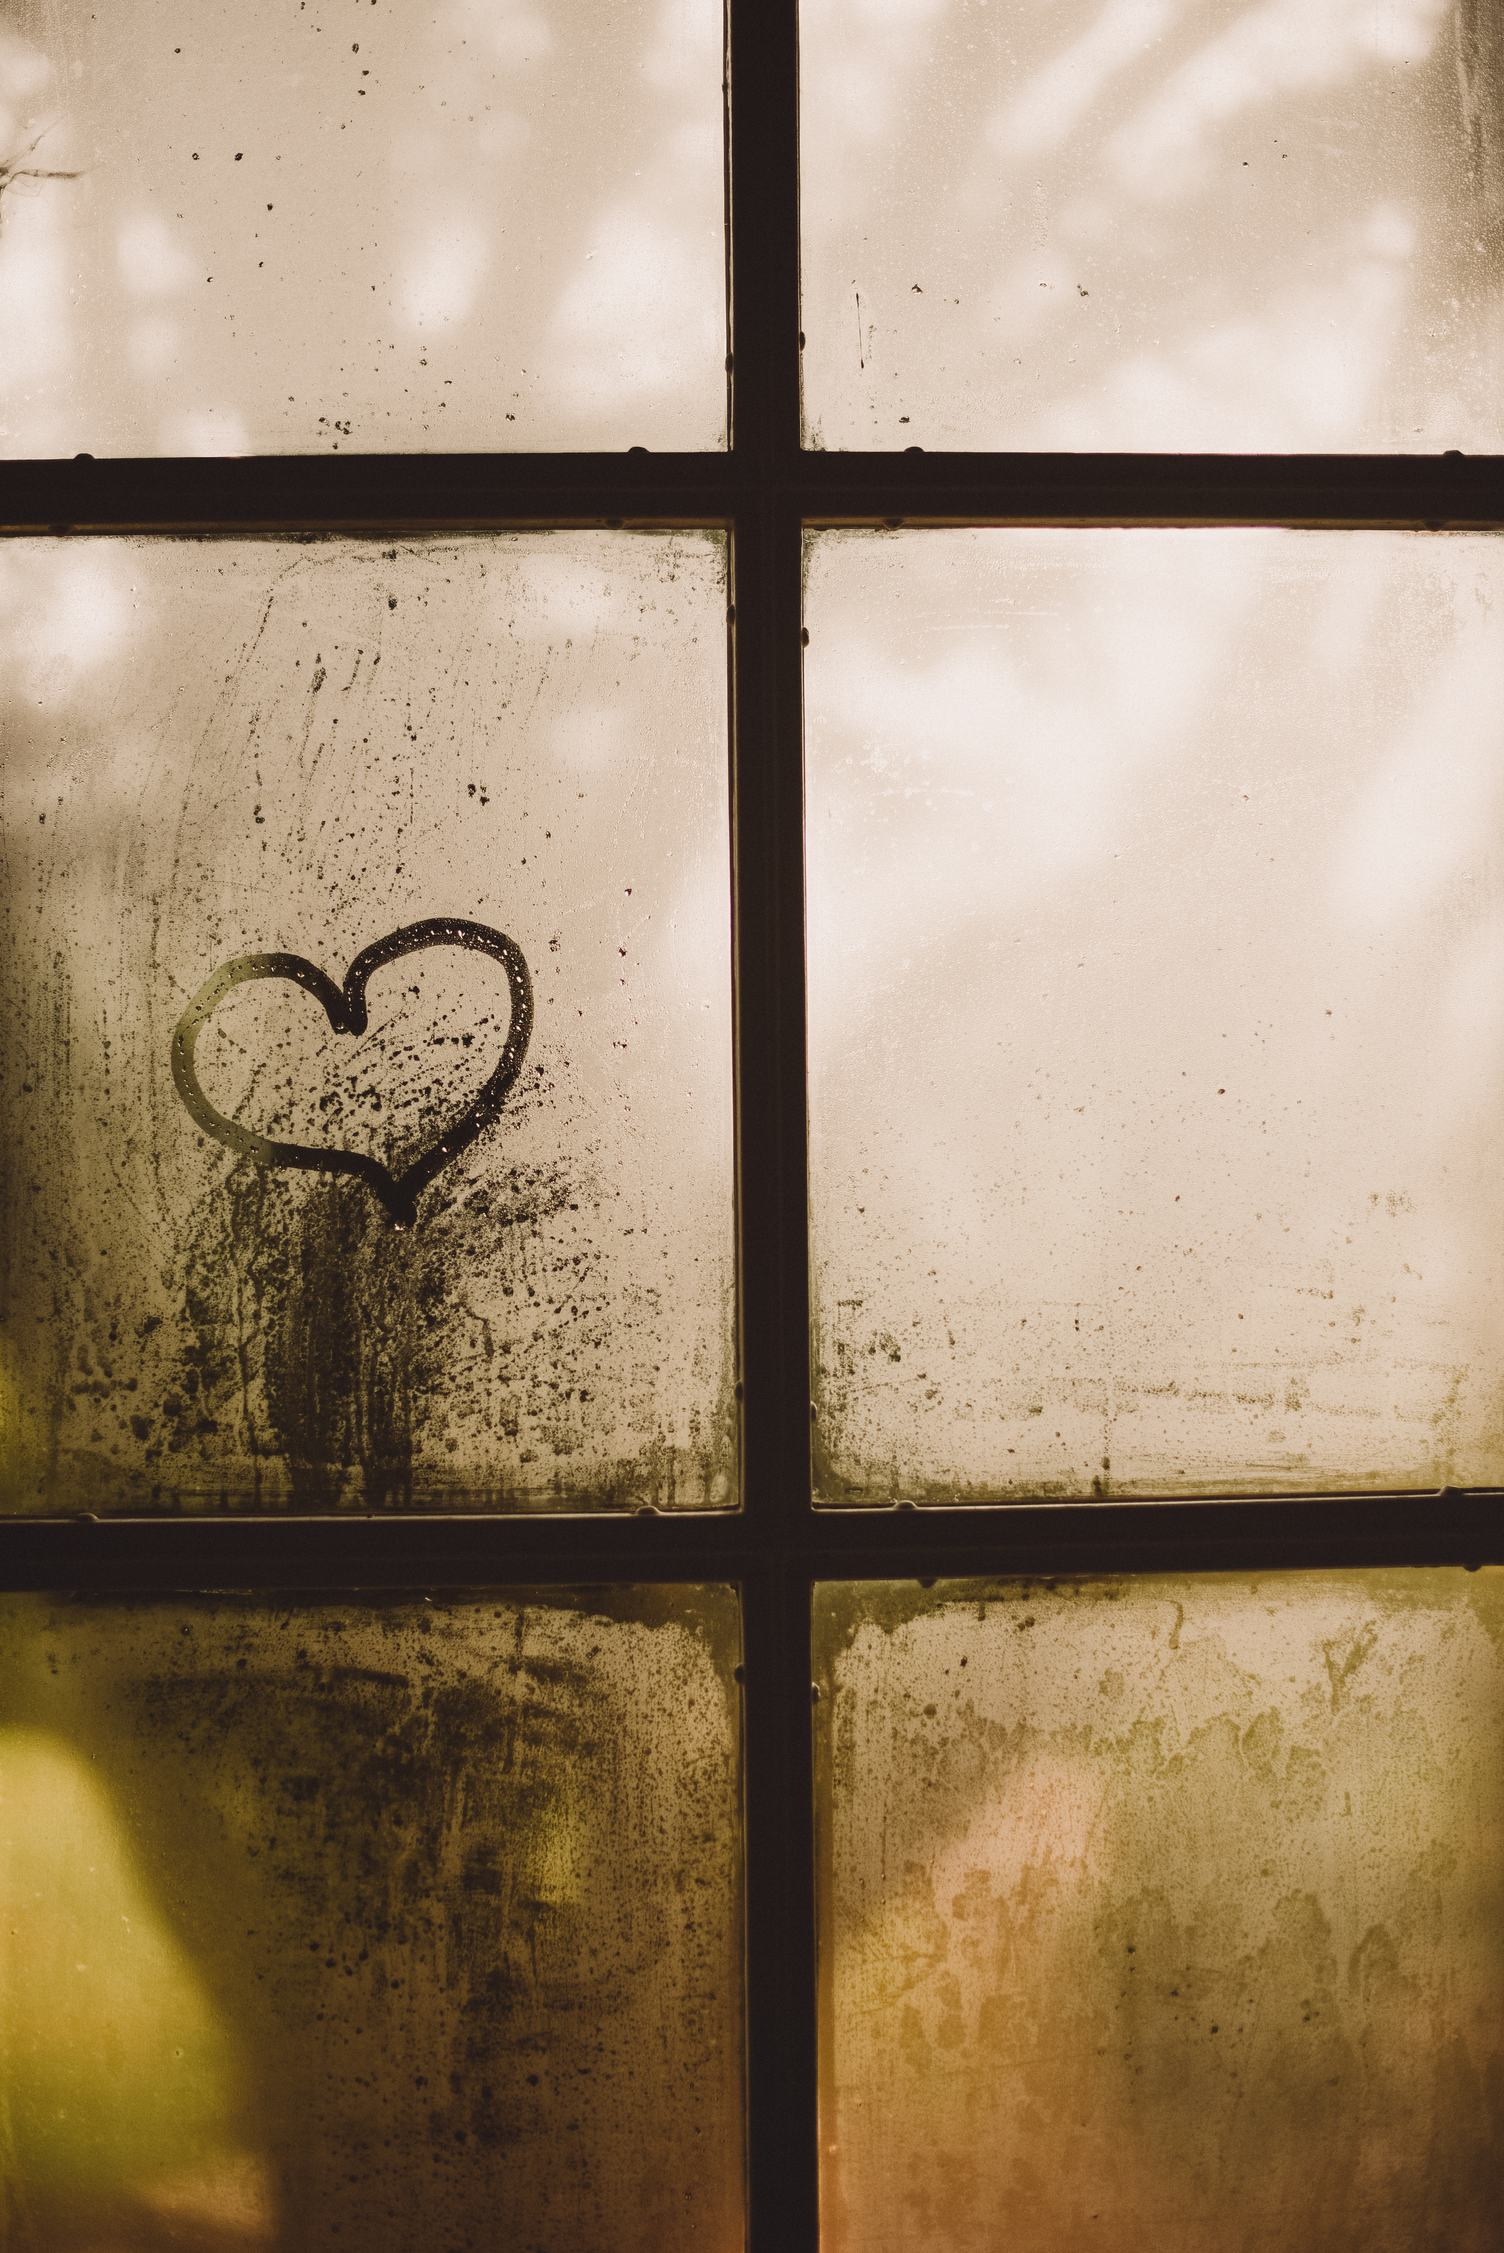 A Heart Painted on a Misted Window